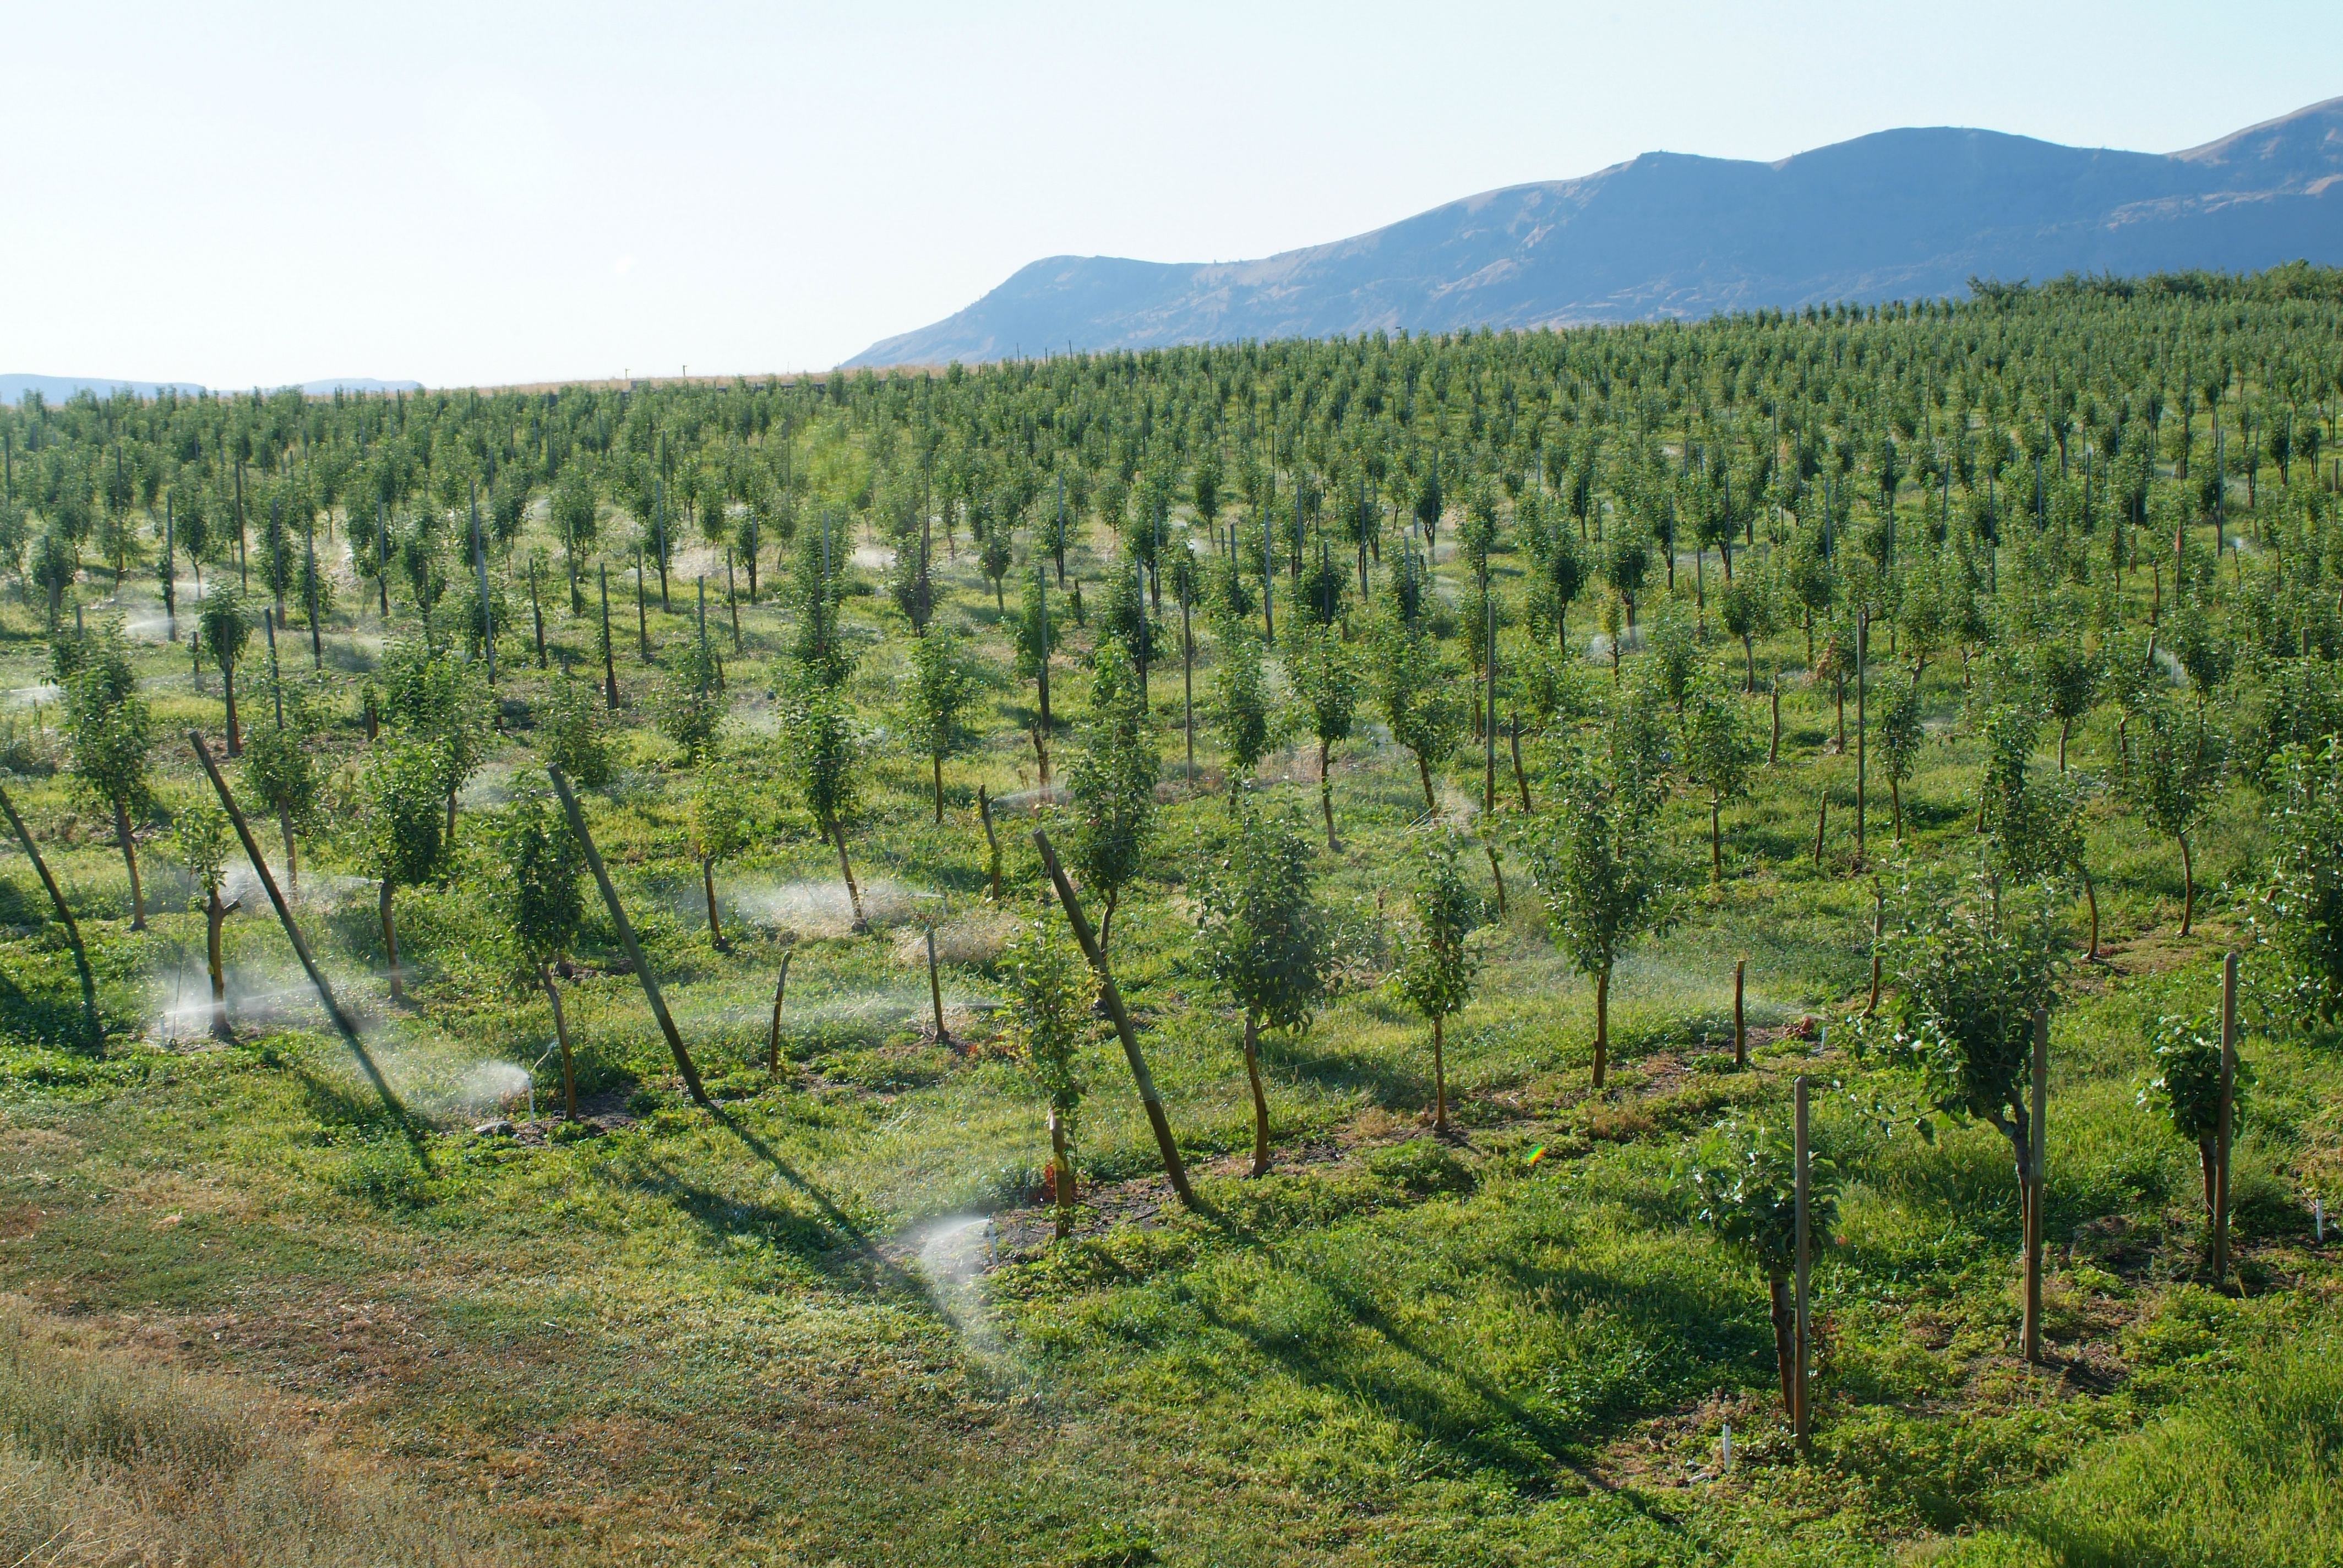 This agronomic image shows a pome fruit field